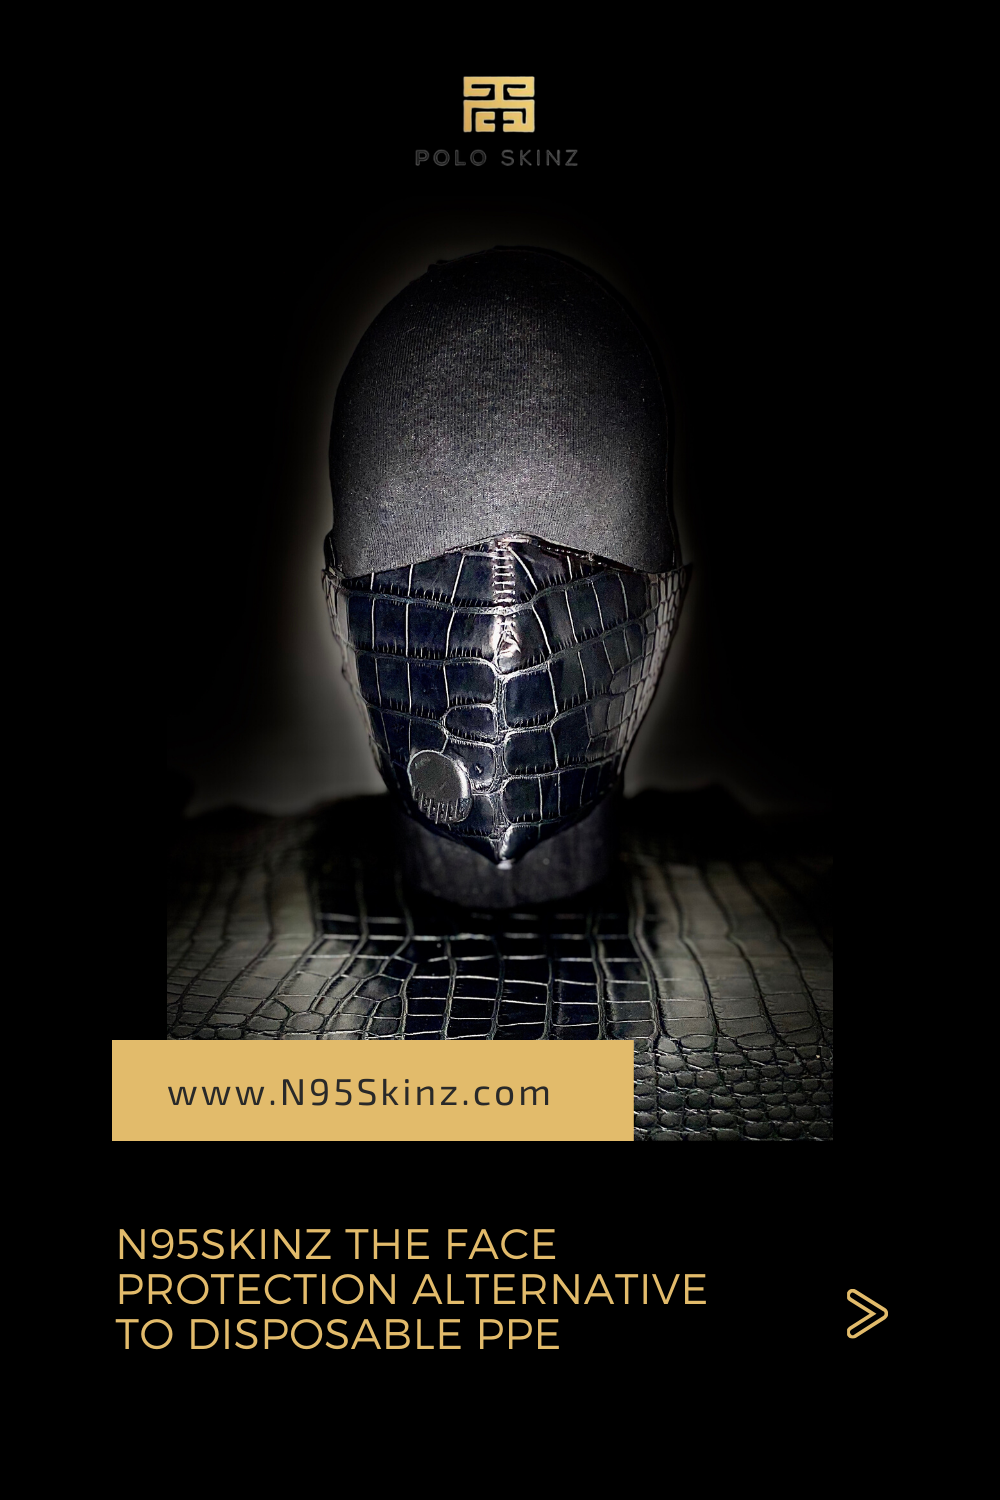 N95Skinz Respirator face mask eco friendly PPE in 2020